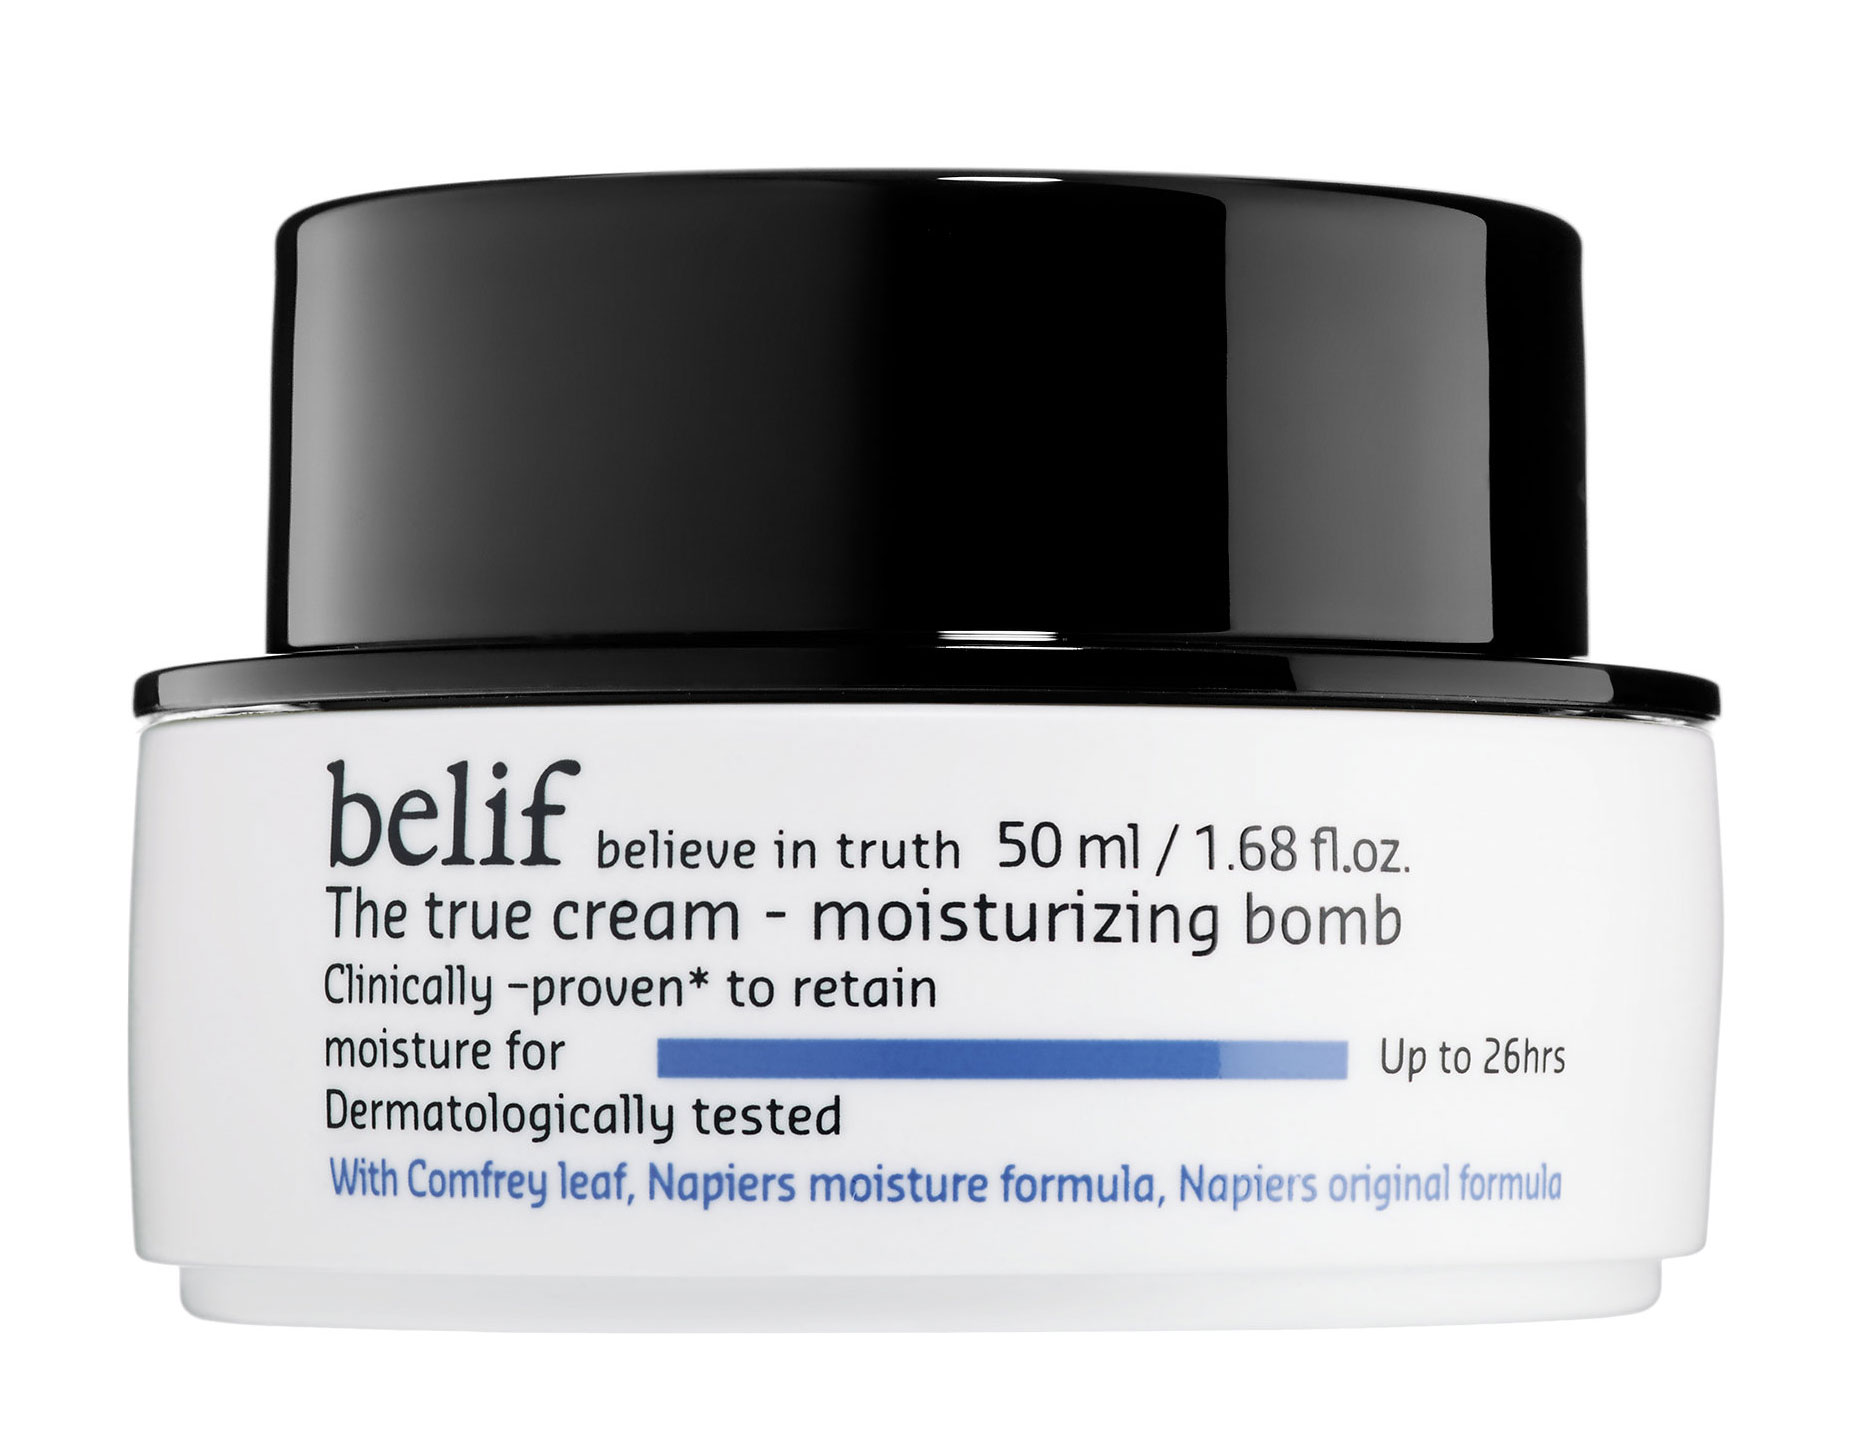 belif-the-true-cream-moisture-bomb